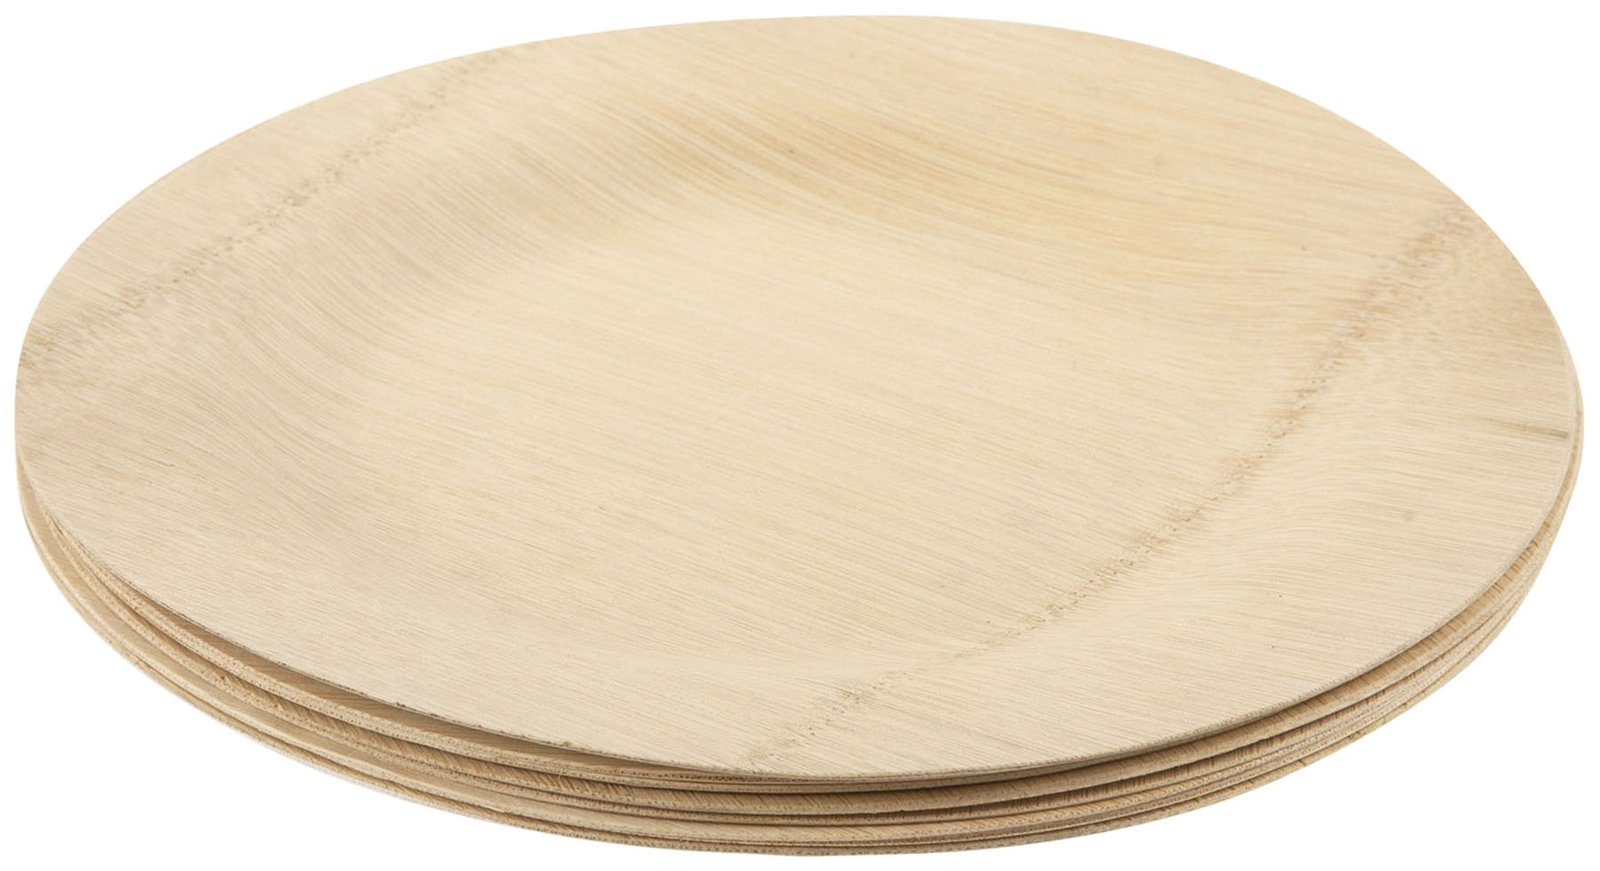 Admirable bamboo plates with Core bamboo plates for serveware ideas